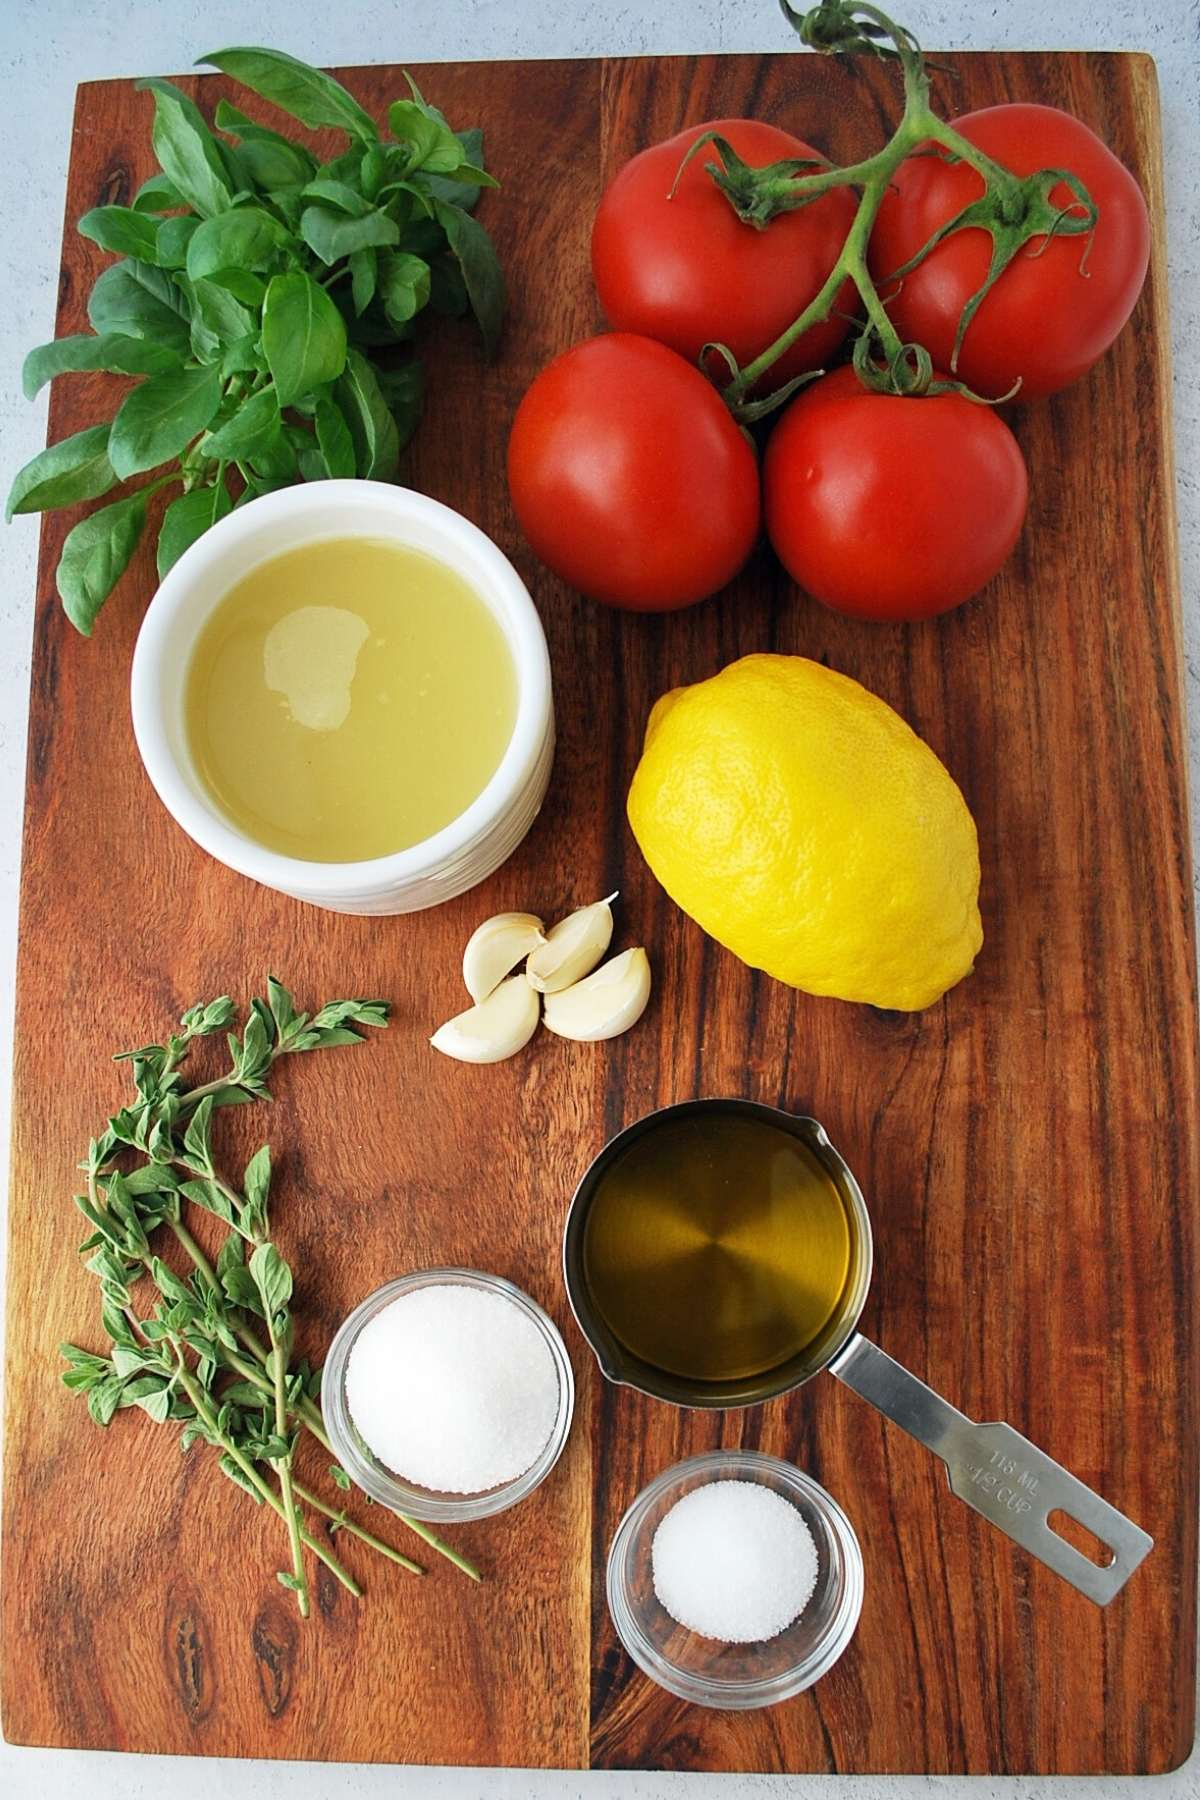 ingredients for tomato basil pasta sauce on a cutting board